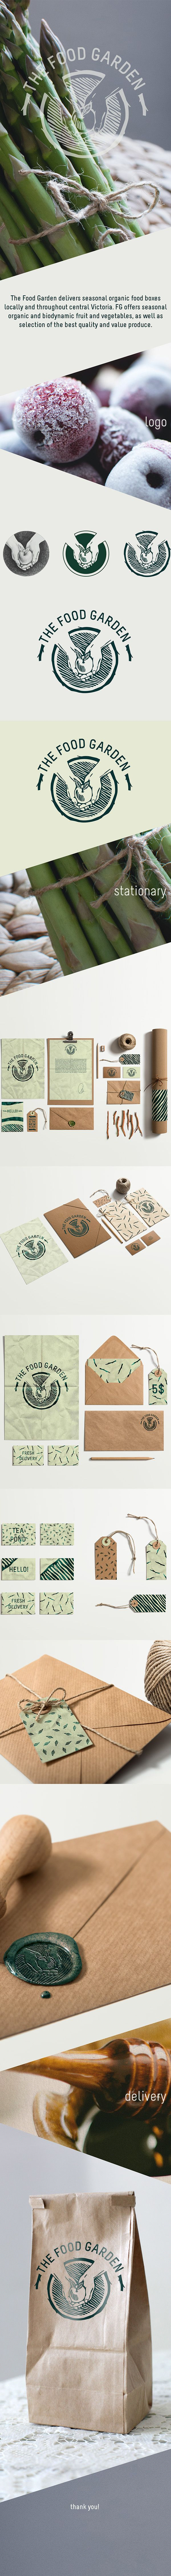 Seasonal and organic food products packaging branding for the Food Garden PD